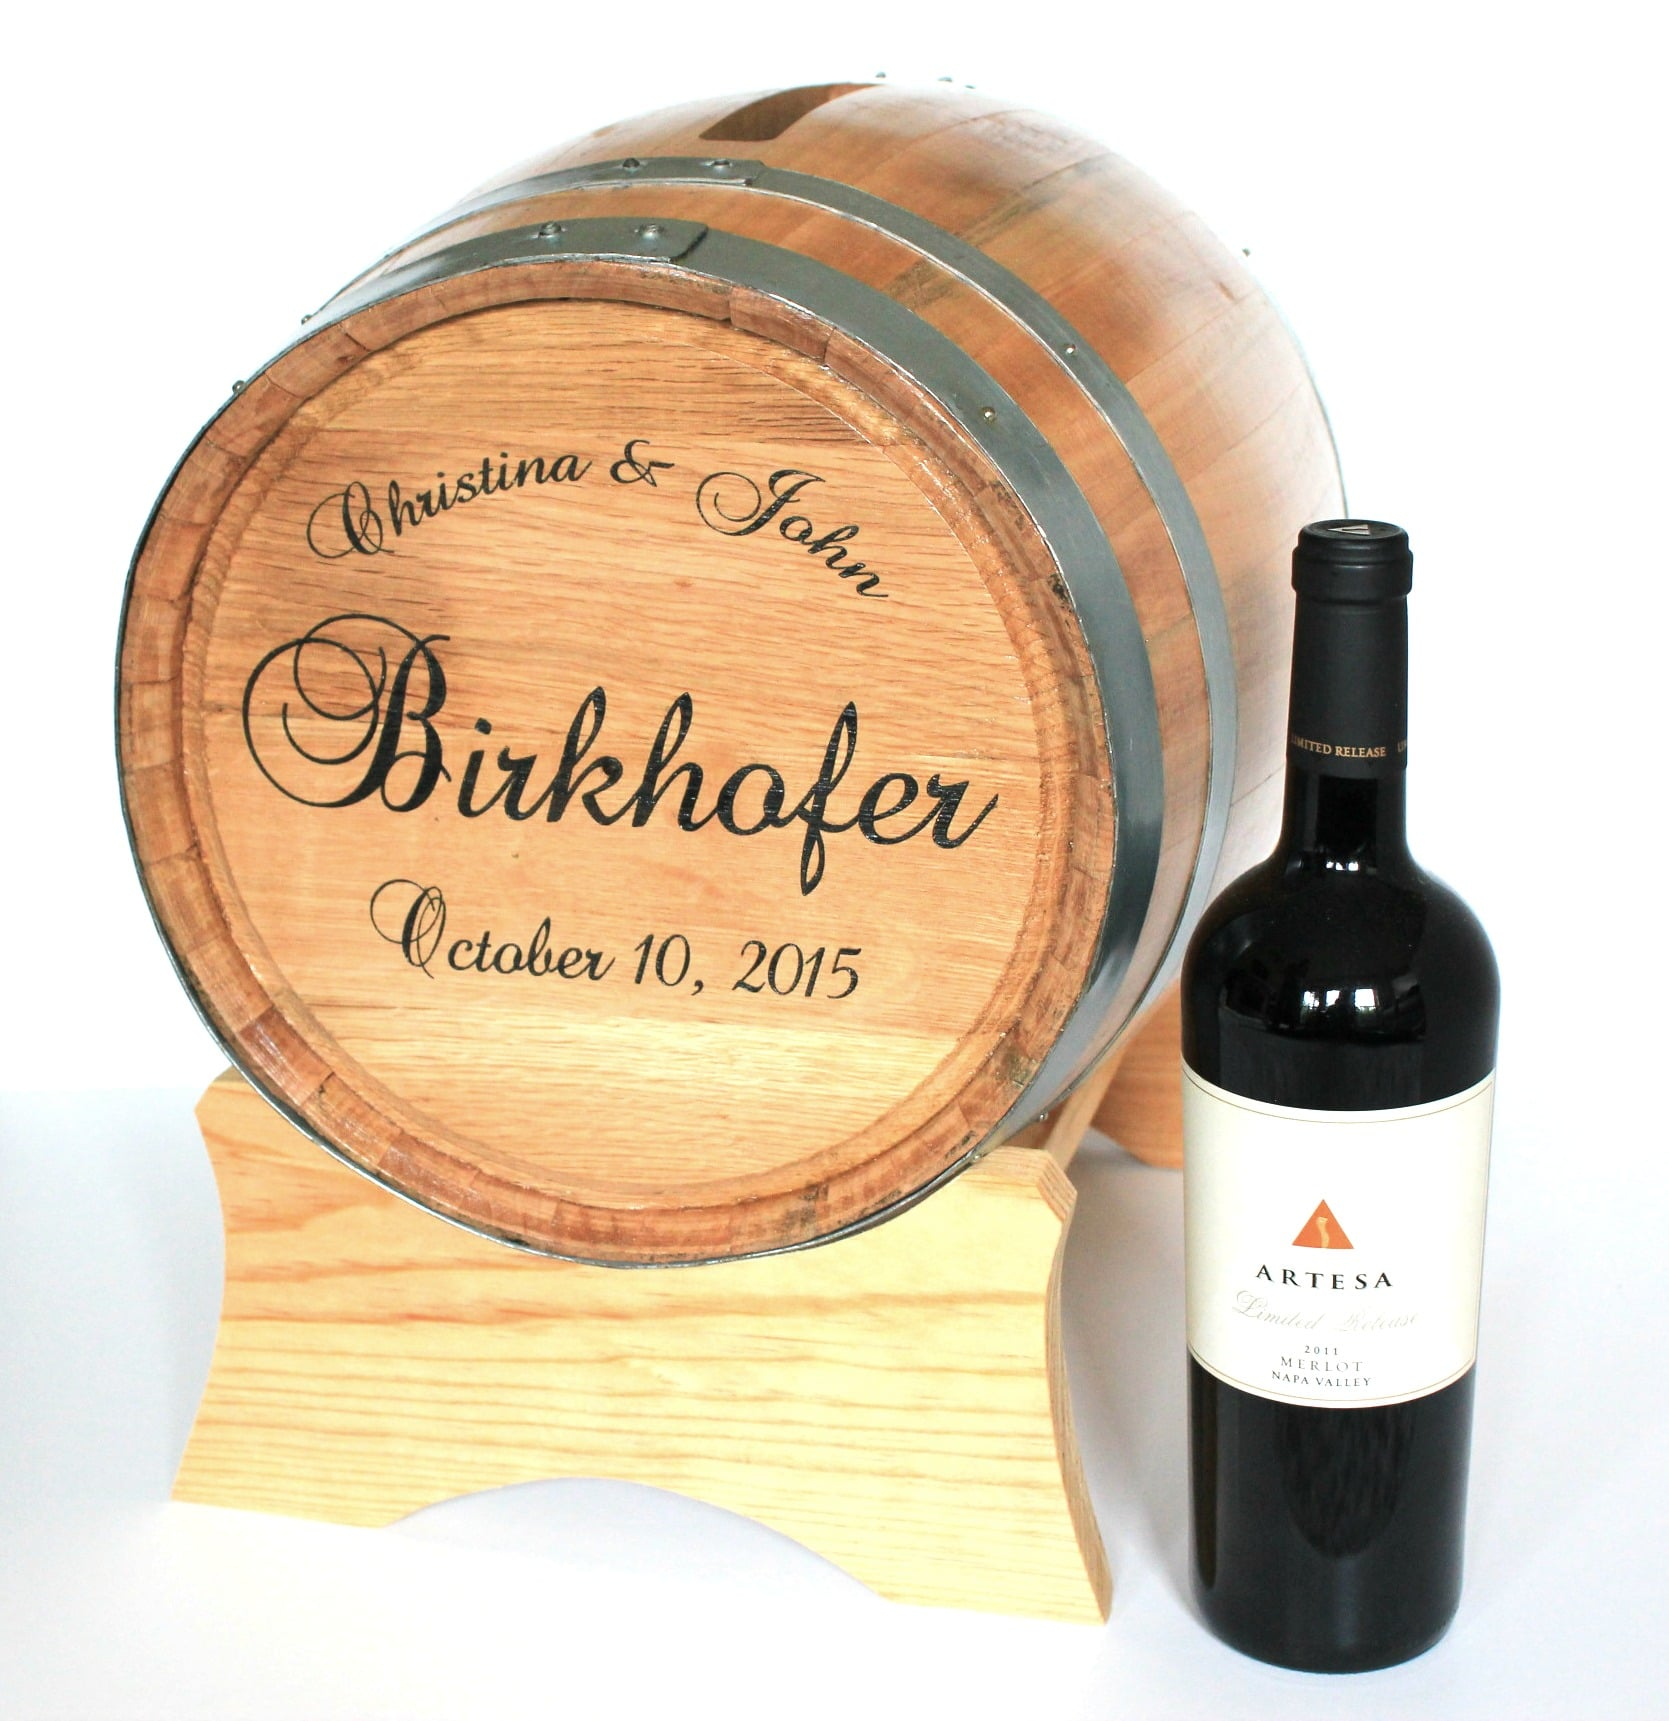 Card Holder Barrel with engraving example and next to Artesa bottle of wine